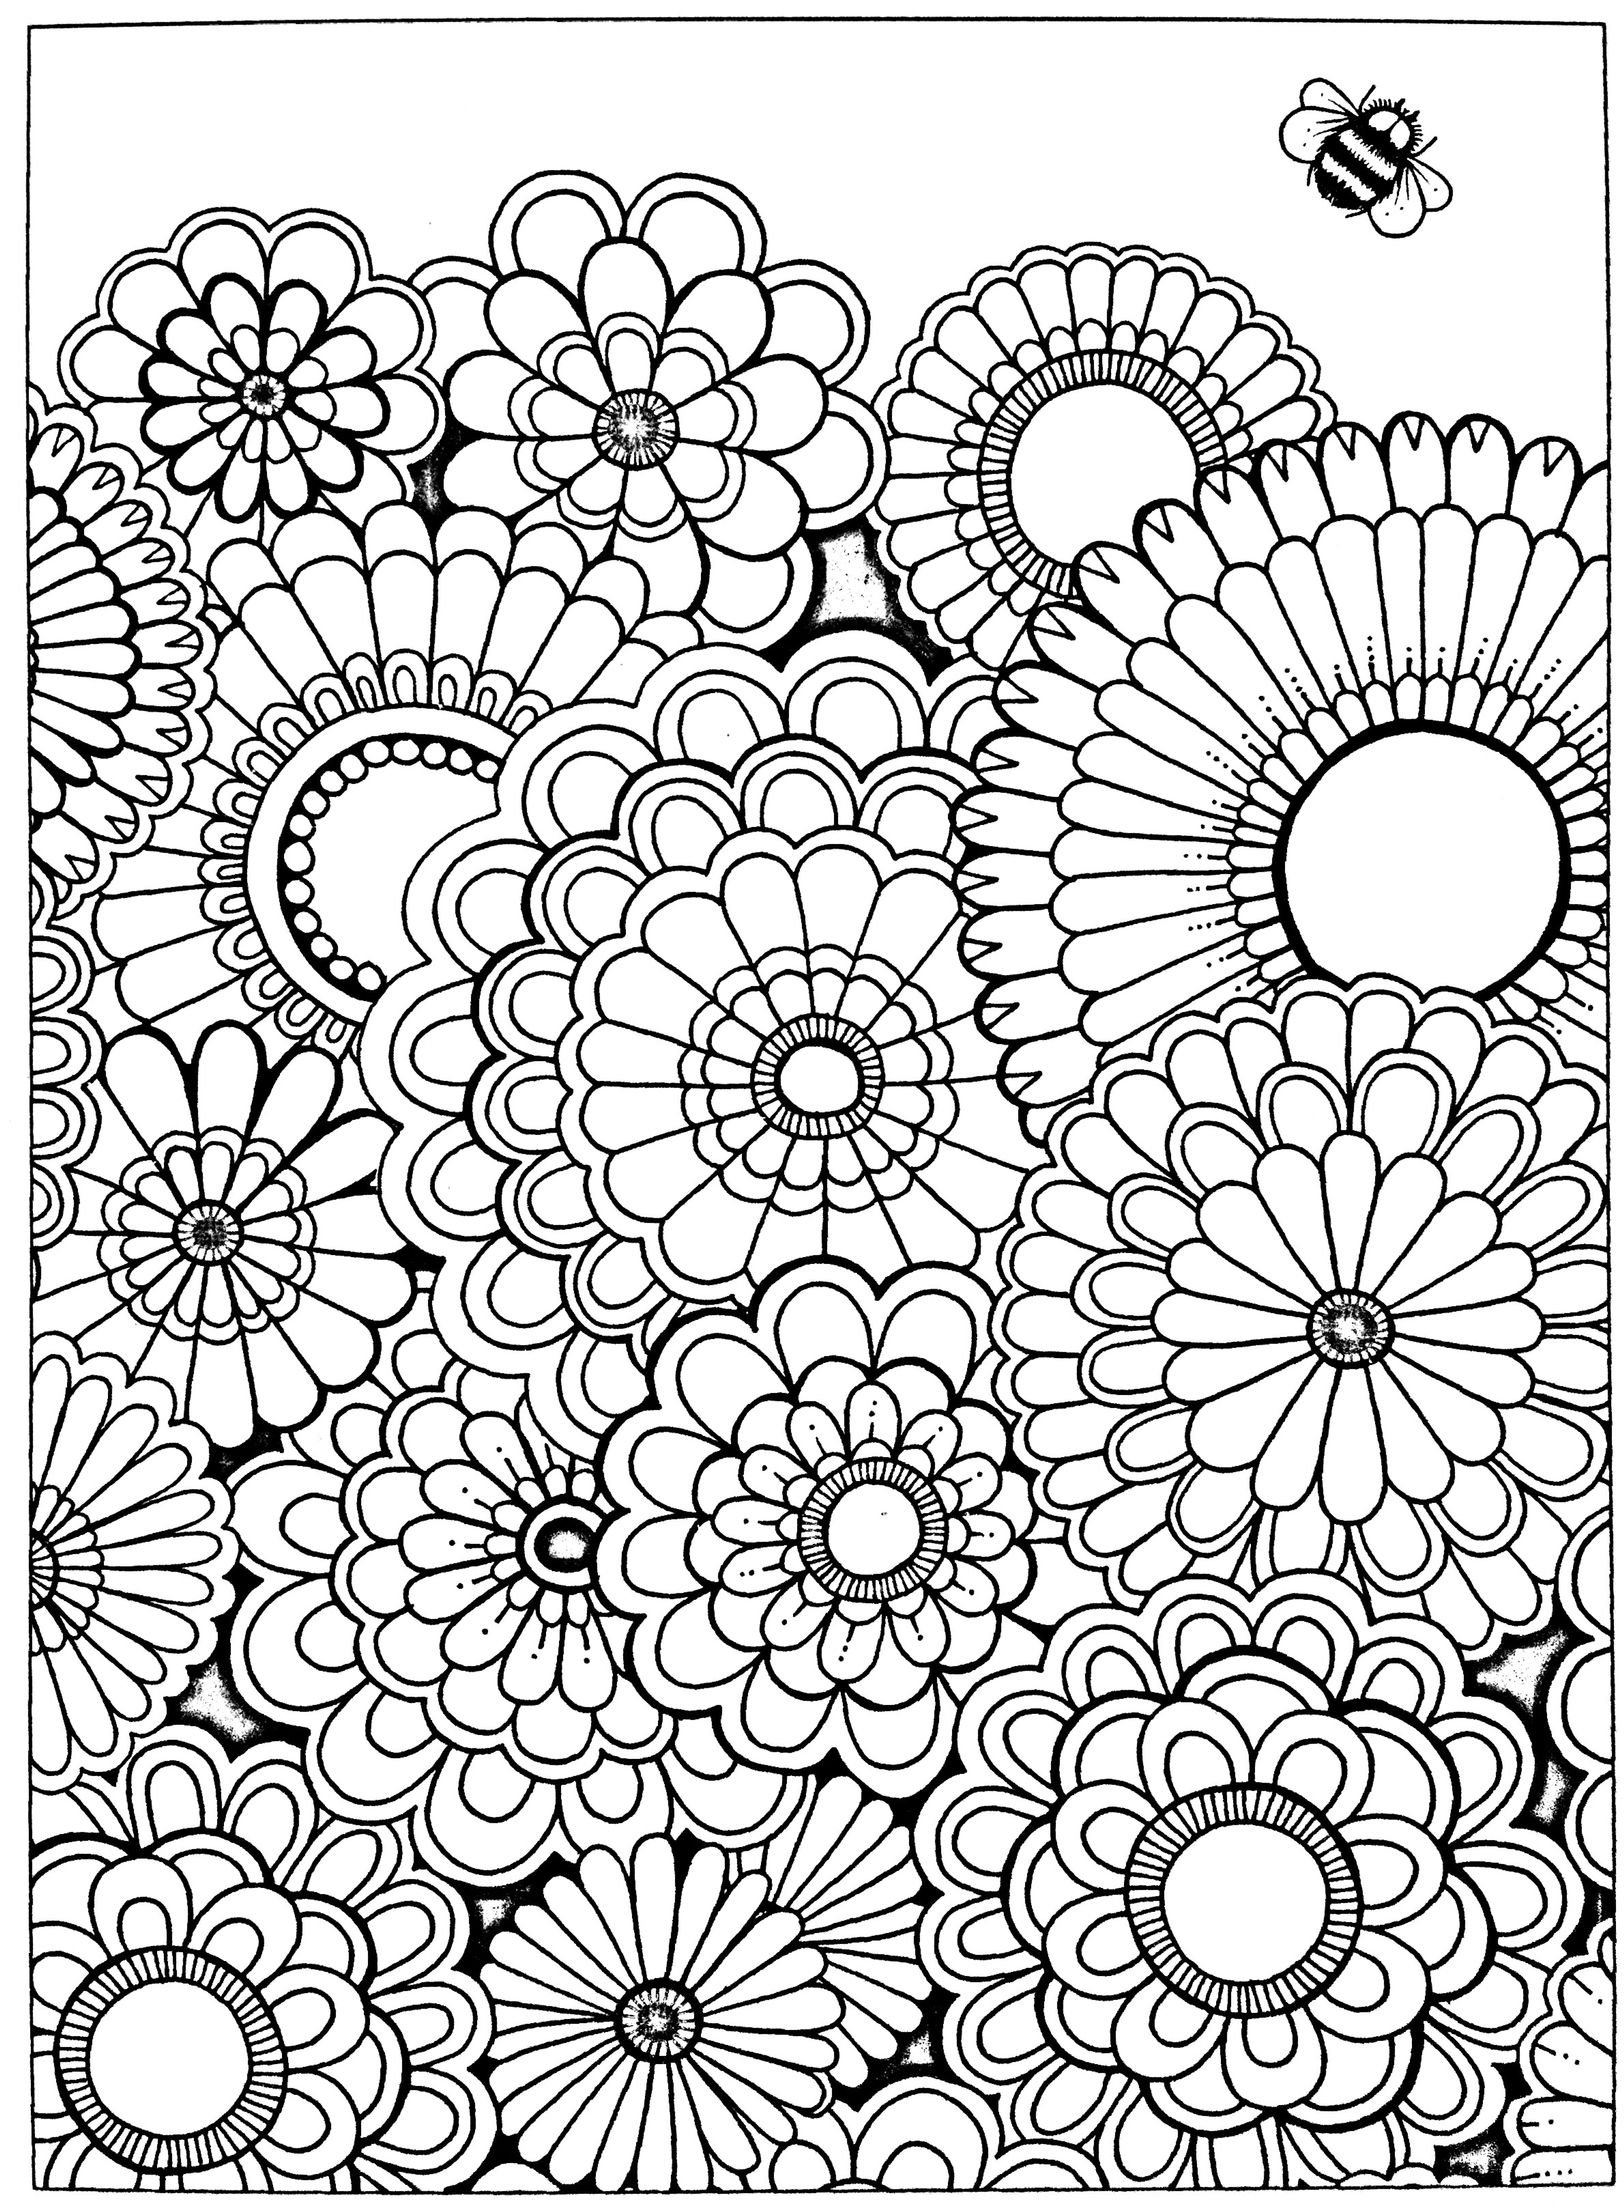 Free adult coloring page Secret Garden | Coloring books ...